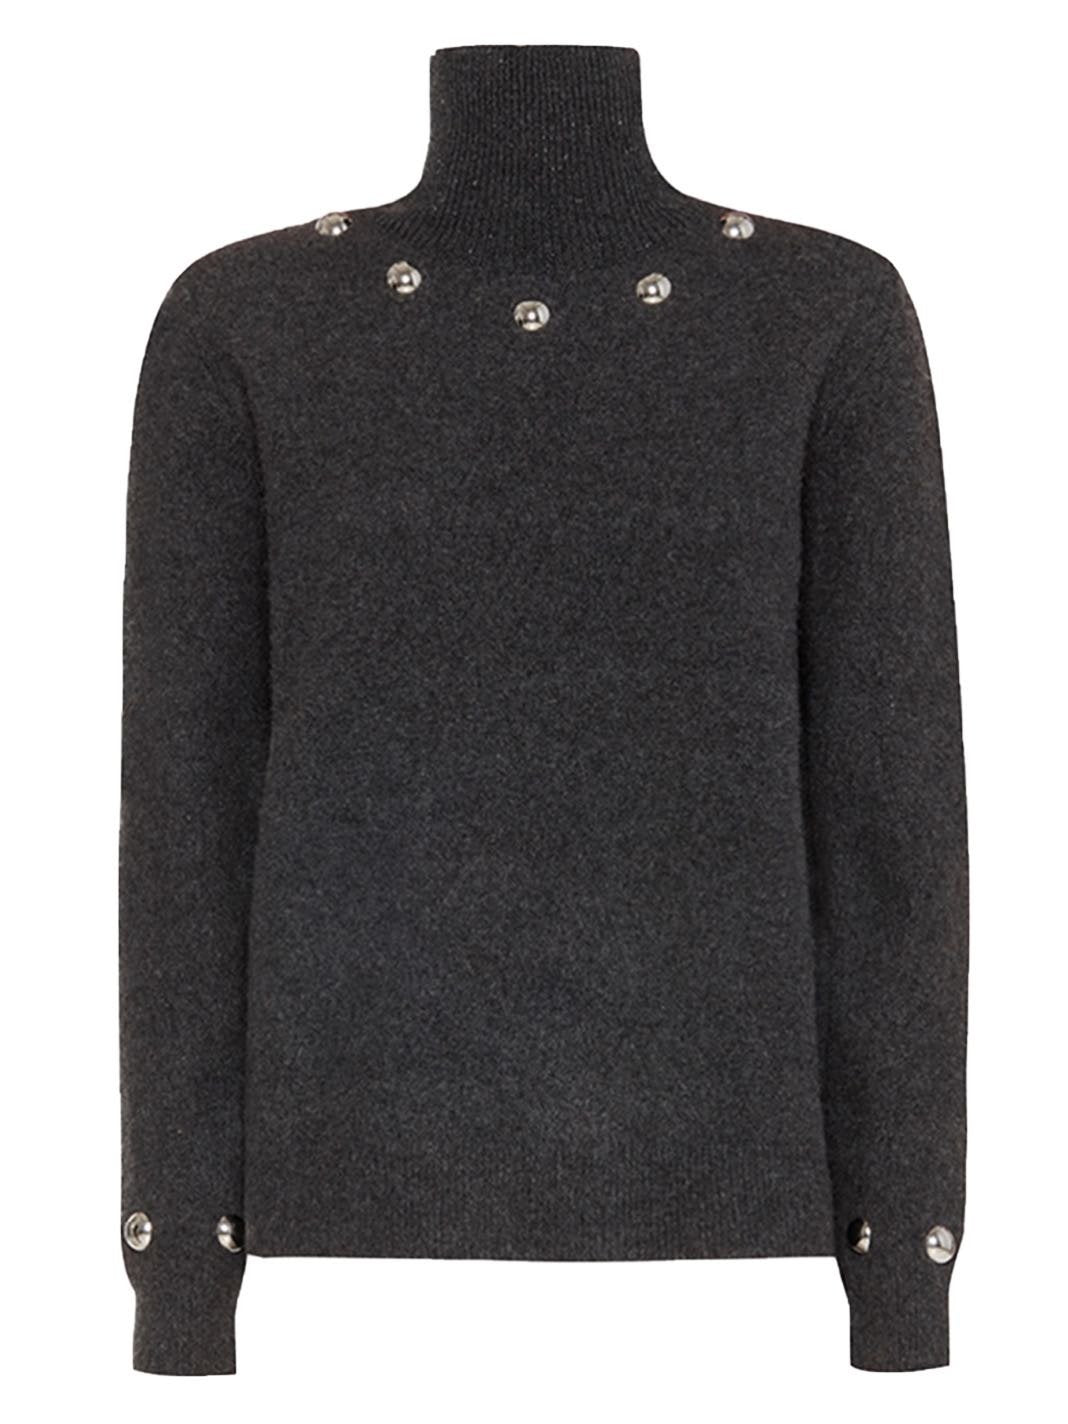 Dublin Wool Turtle Neck - The Bobby Boga